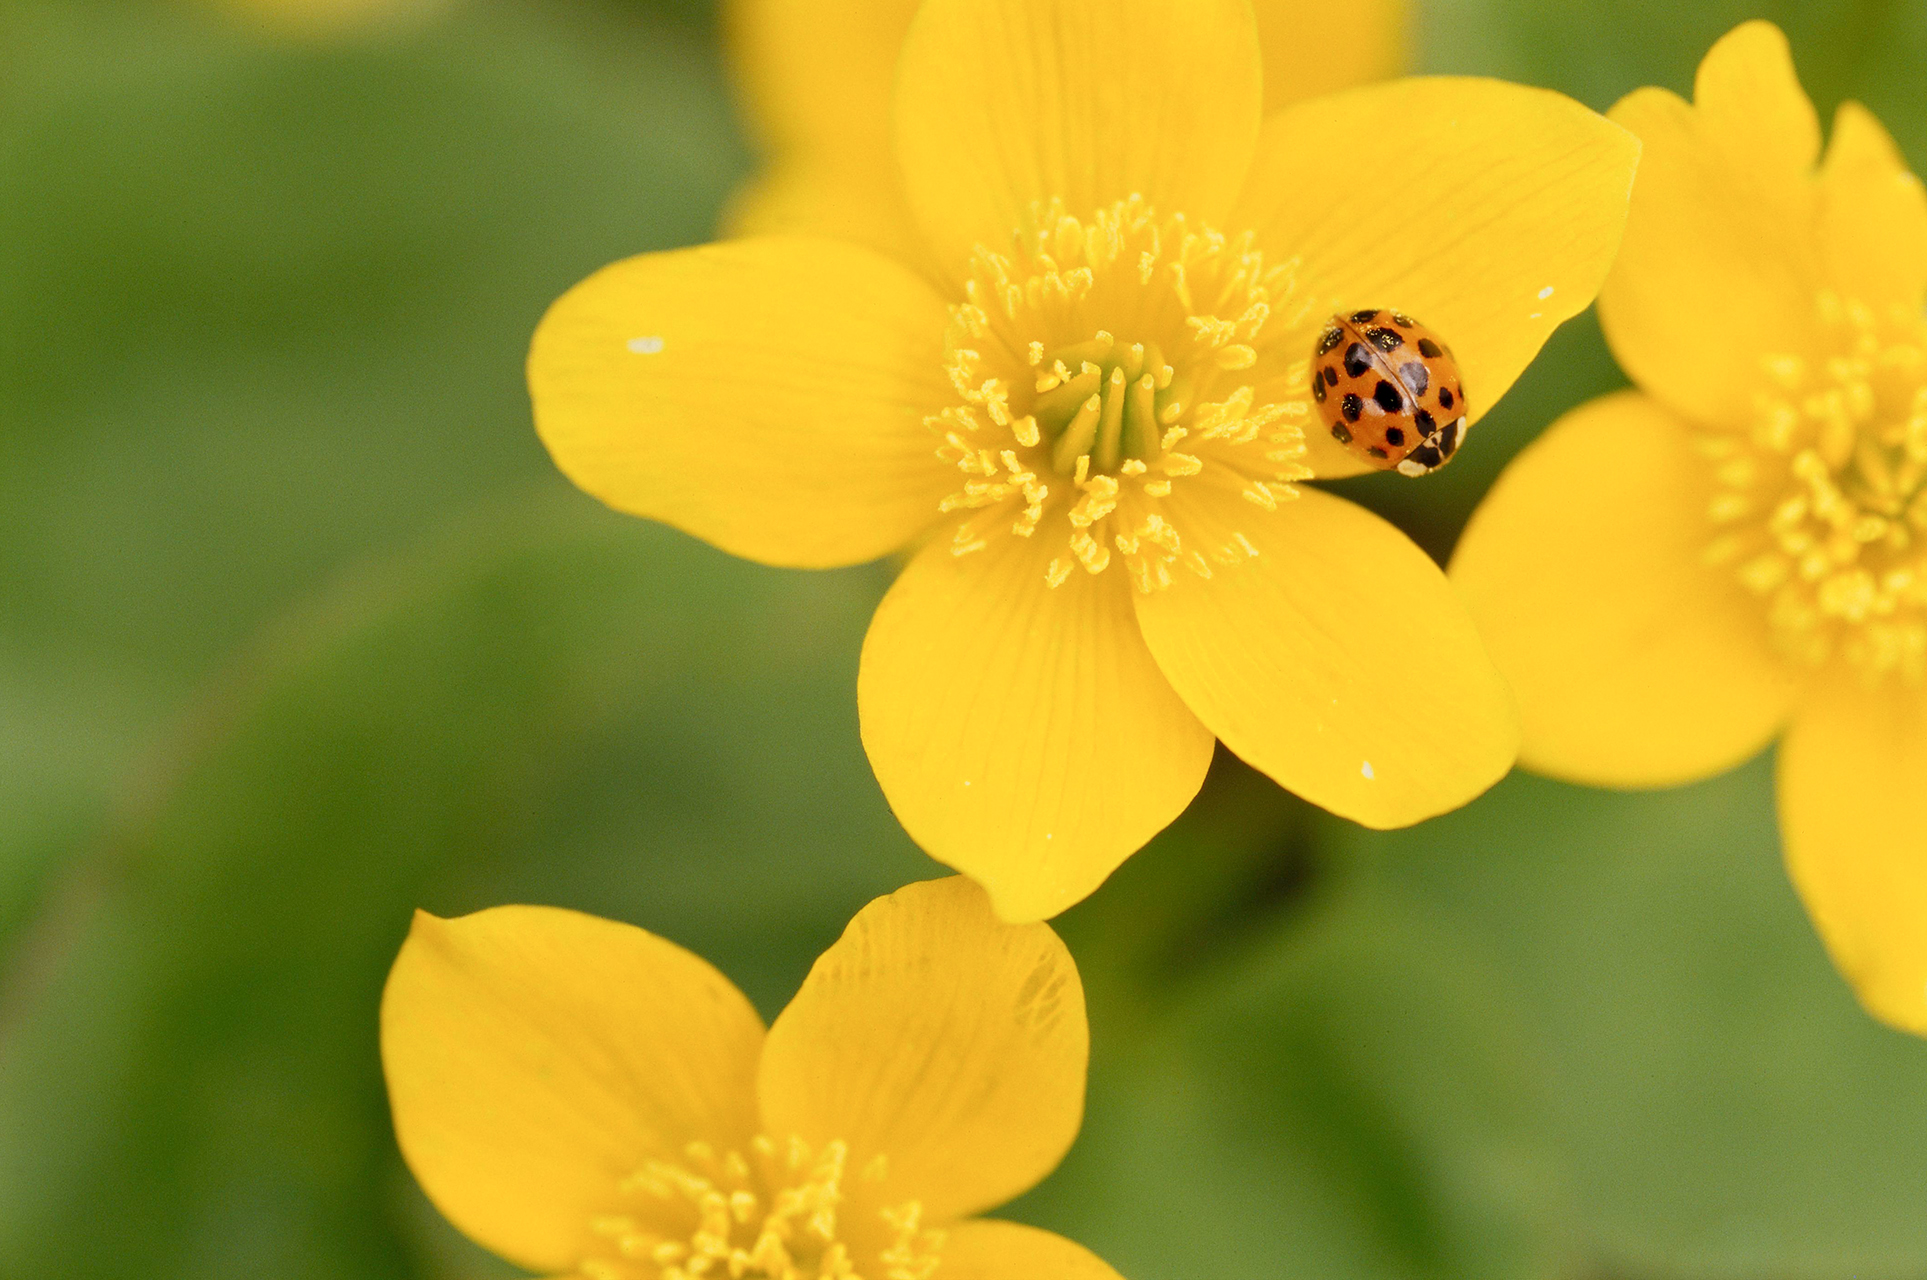 asian beetle on yellow flower